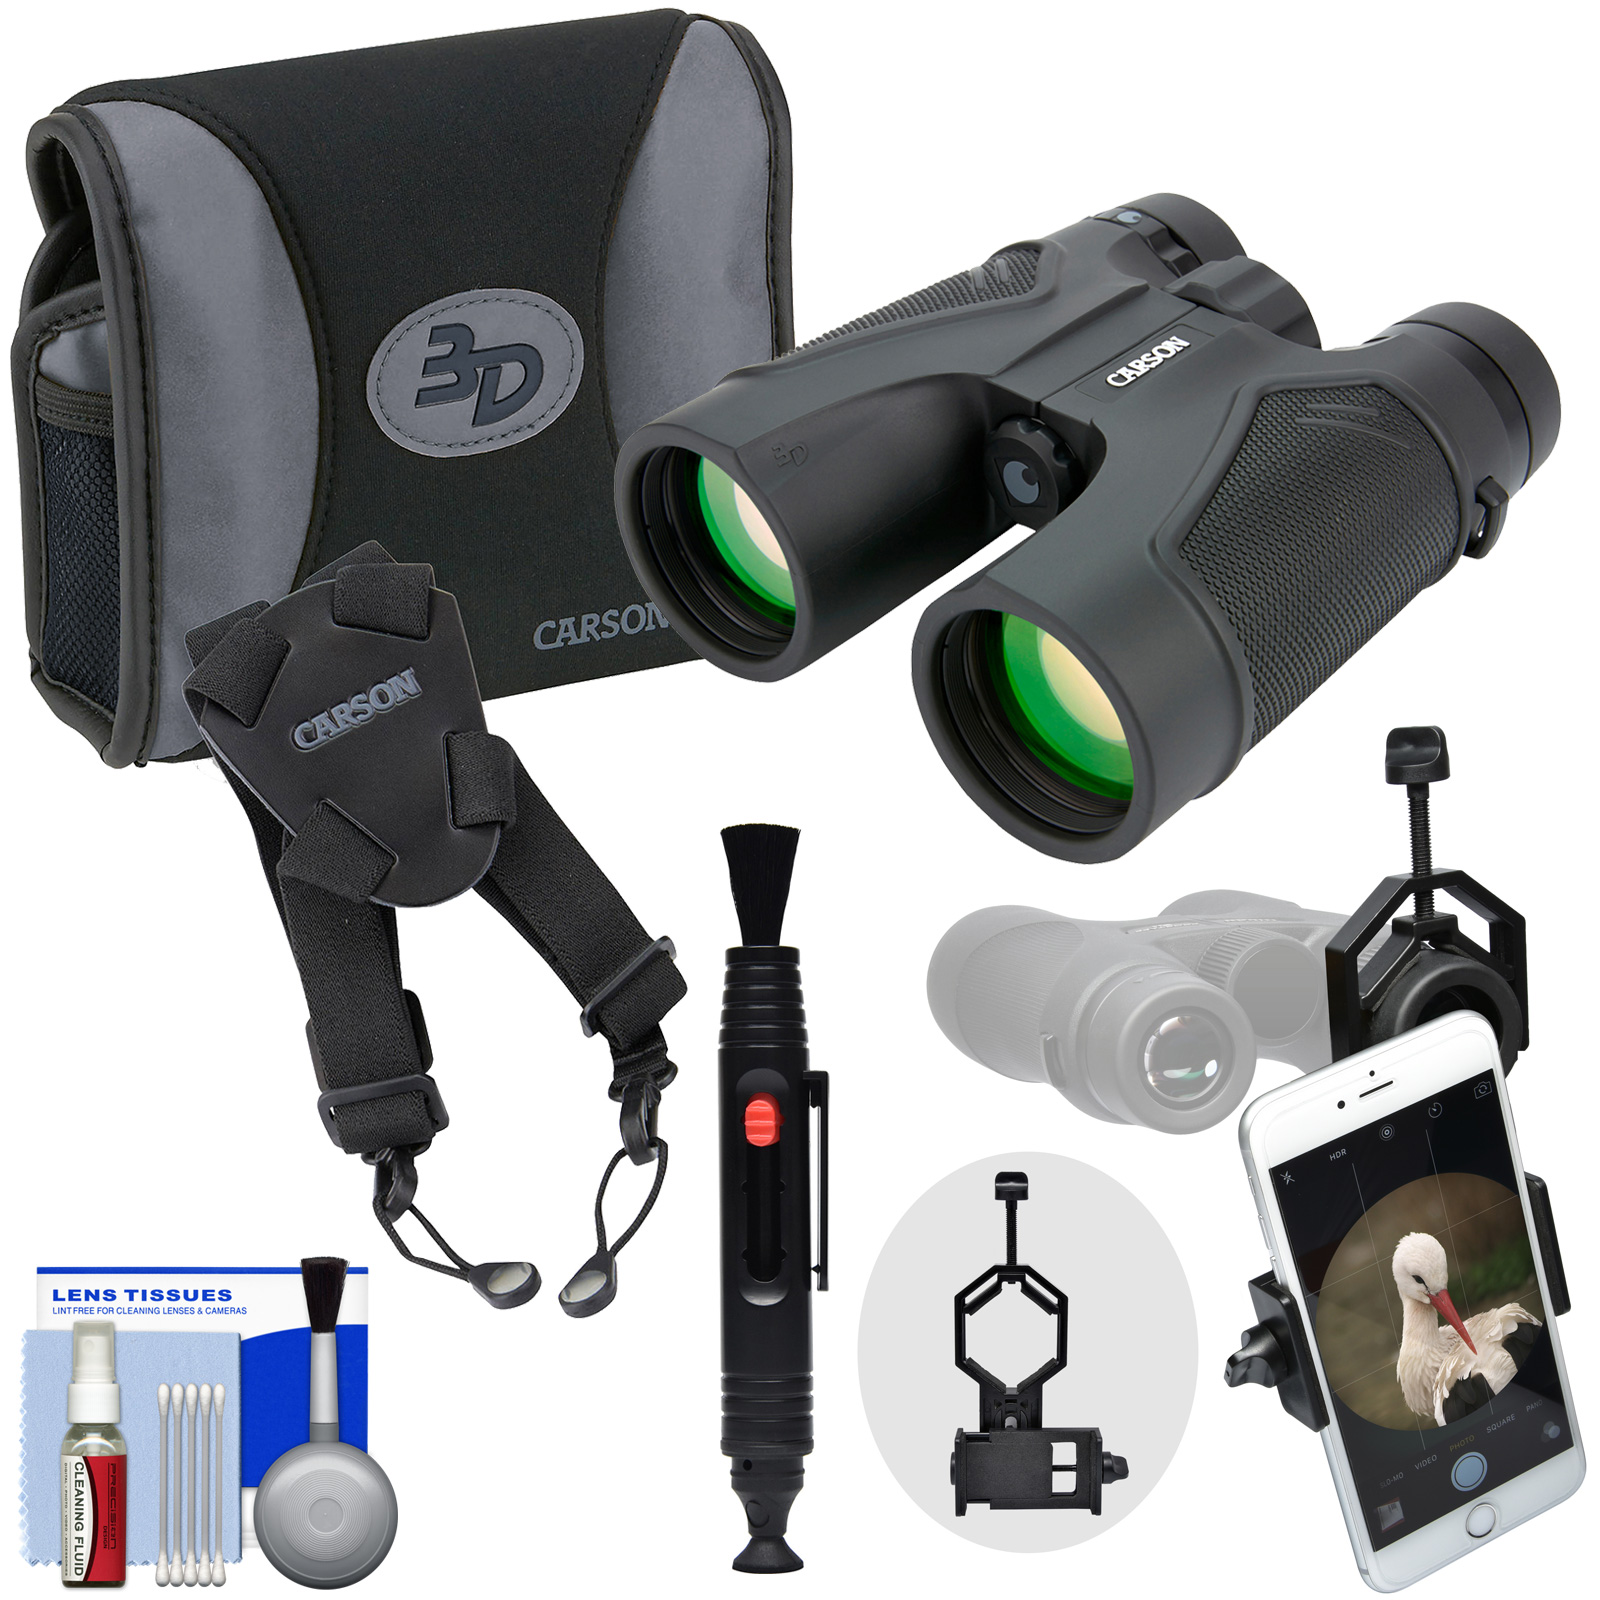 Carson 3D Series 10x42 ED Waterproof / Fogproof Binoculars & Case with Shoulder Harness   Smartphone Adapter   Kit